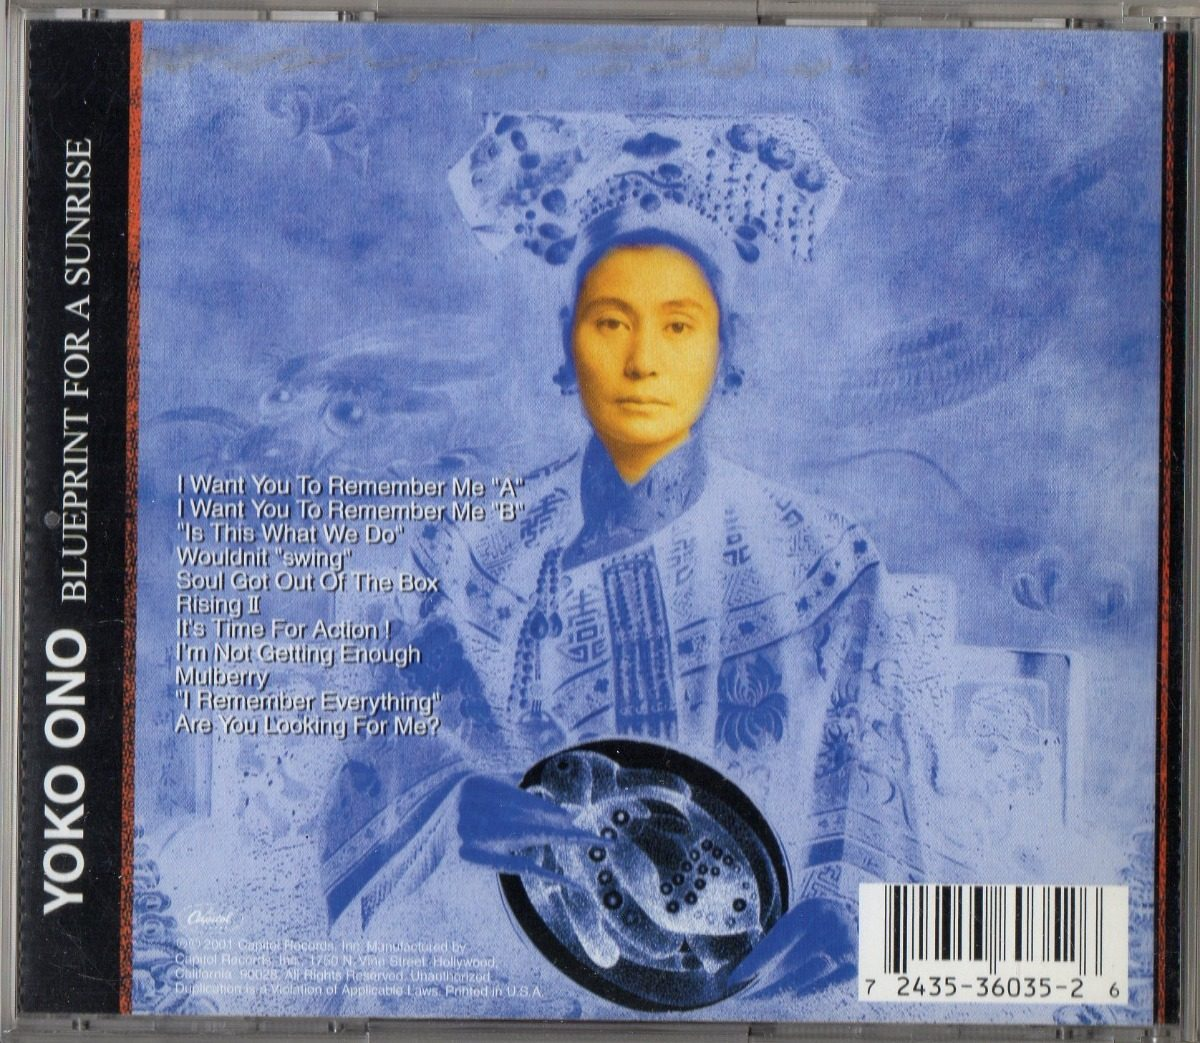 Yoko ono blueprint for a sunrise cd usa 2001 70000 en mercado libre cargando zoom malvernweather Choice Image